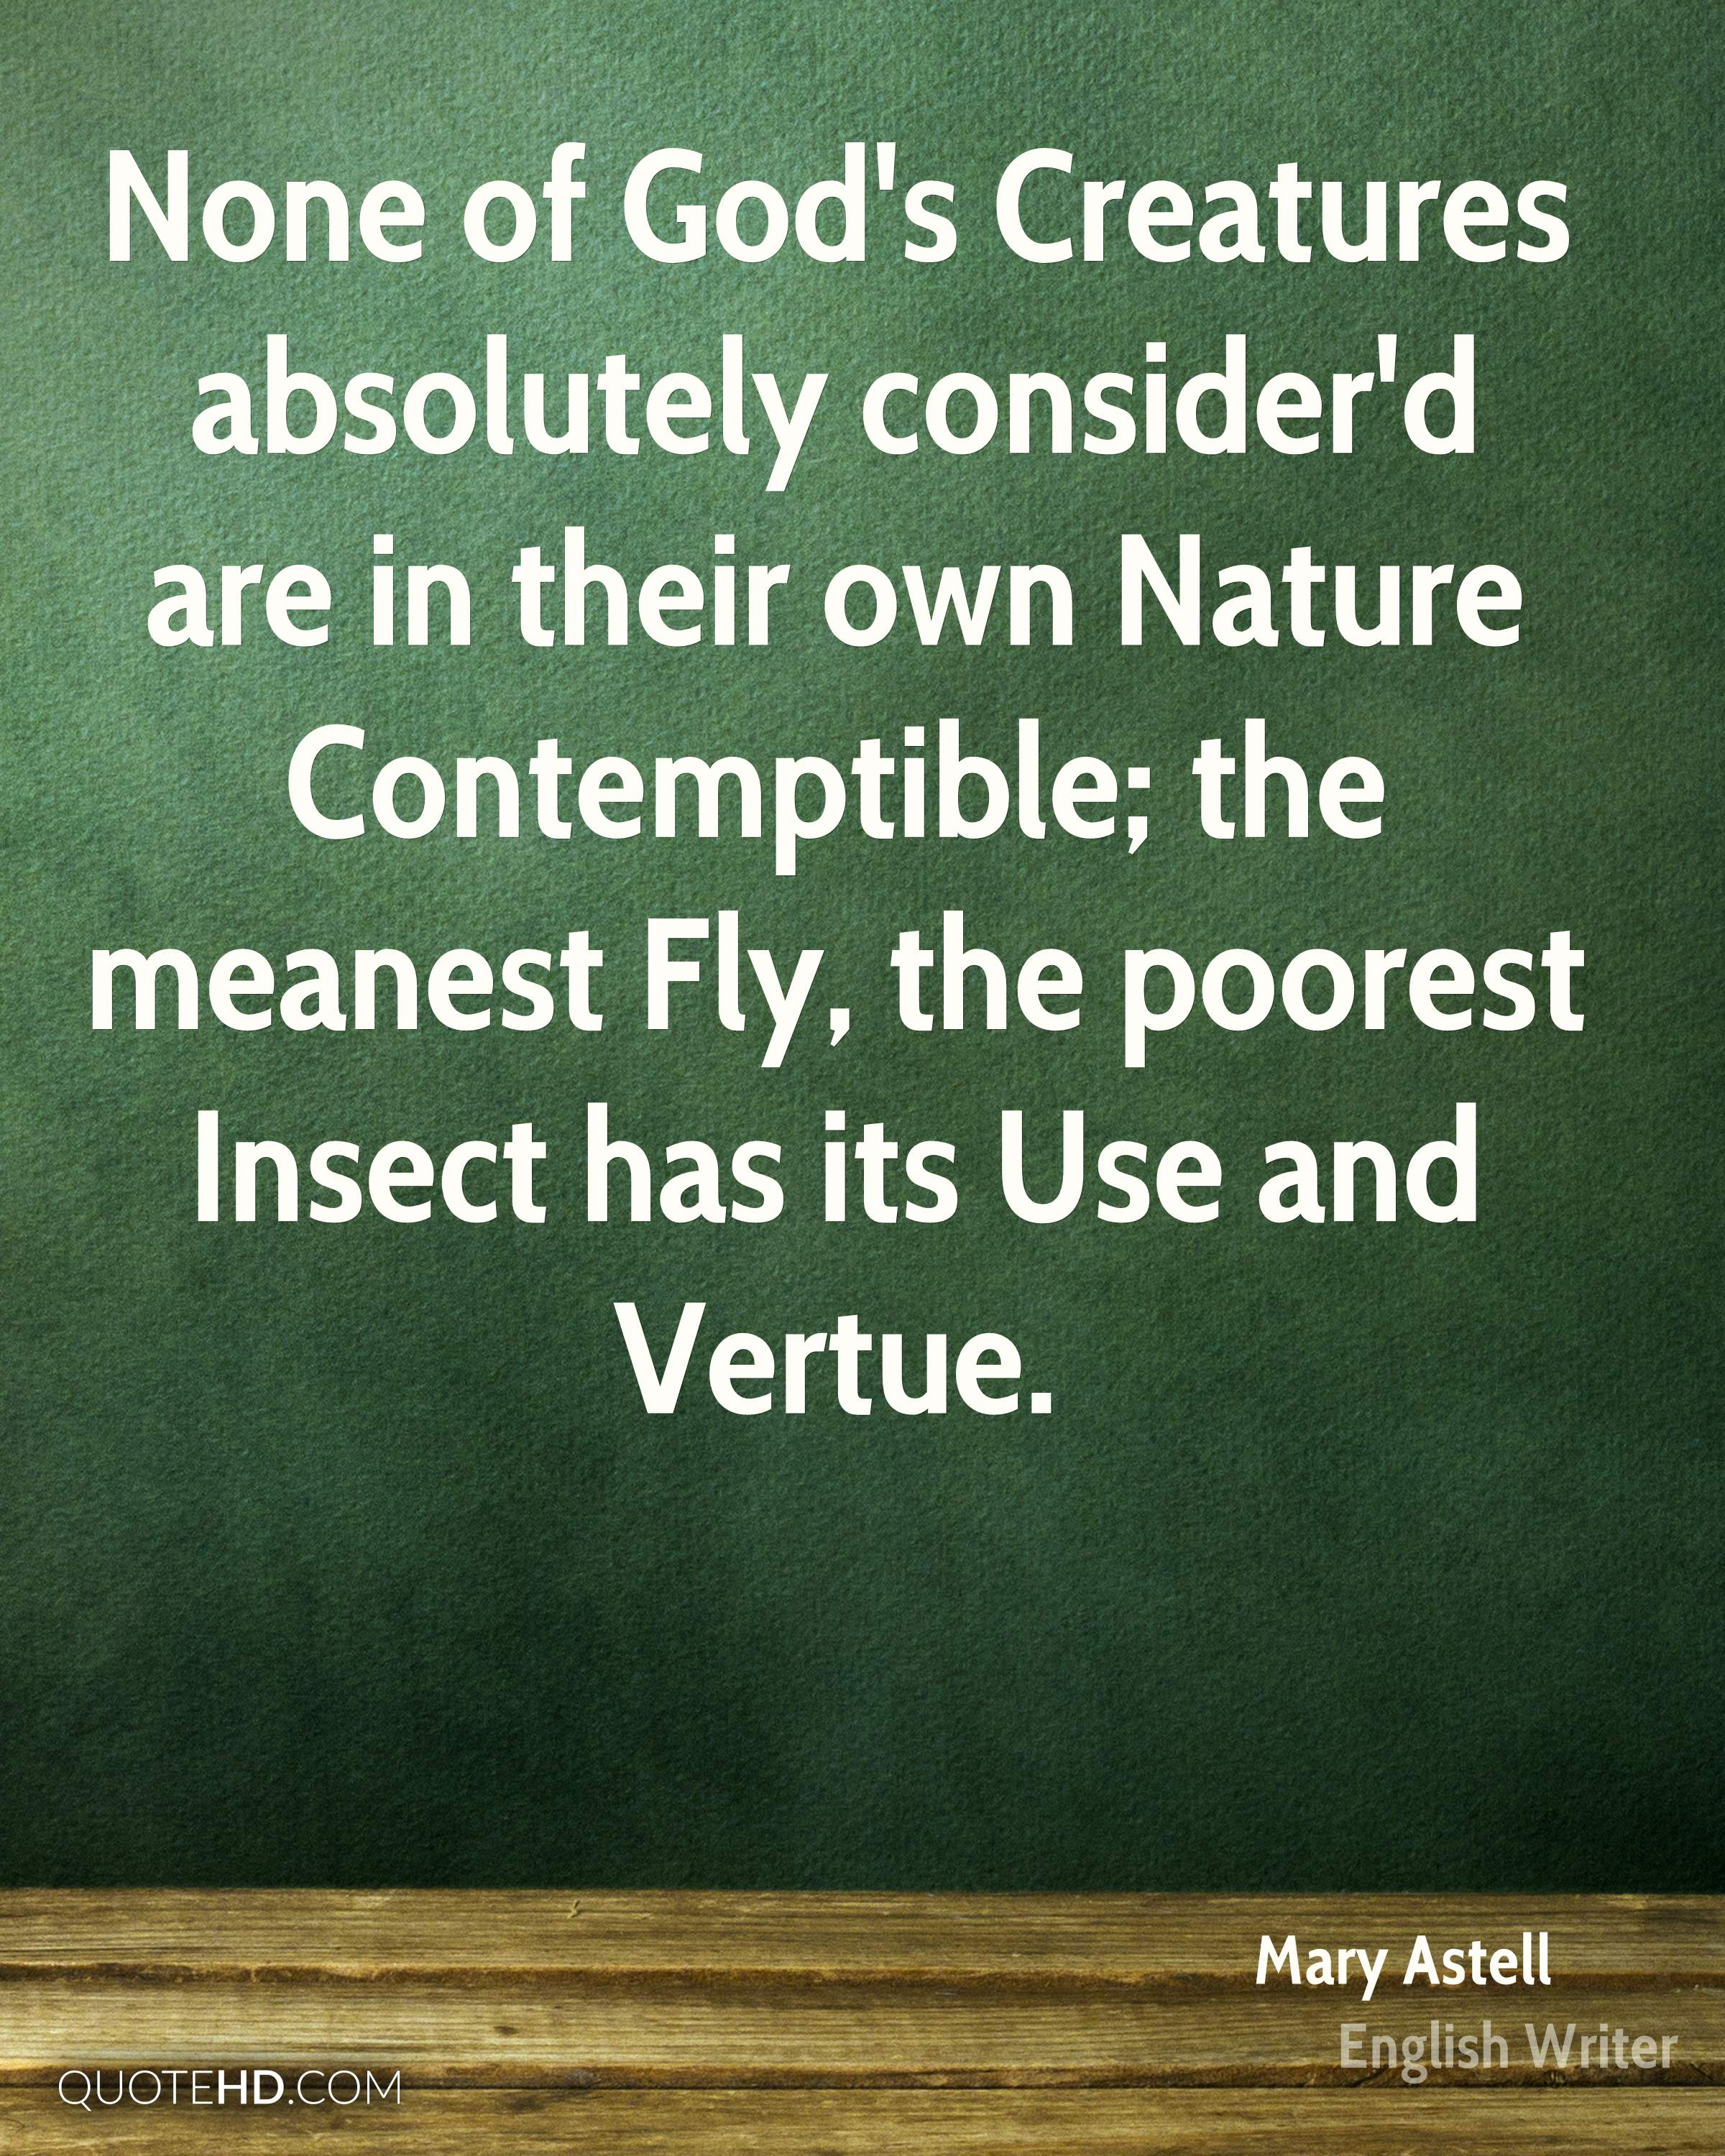 None of God's Creatures absolutely consider'd are in their own Nature Contemptible; the meanest Fly, the poorest Insect has its Use and Vertue.